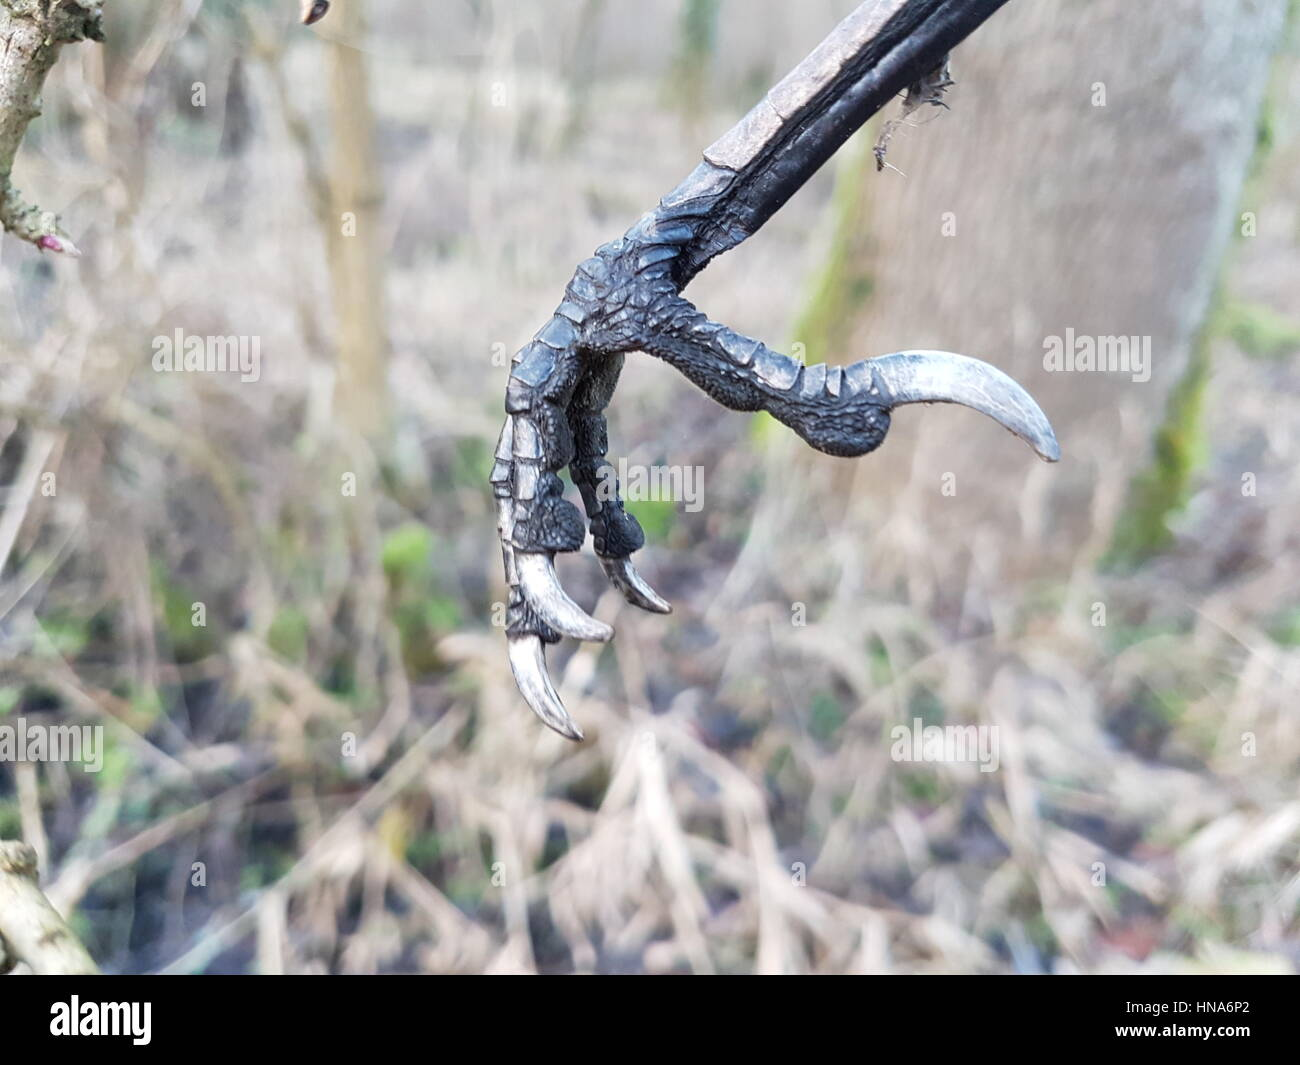 I found this bird foot hanging in a tree and thought it looked amazing. - Stock Image